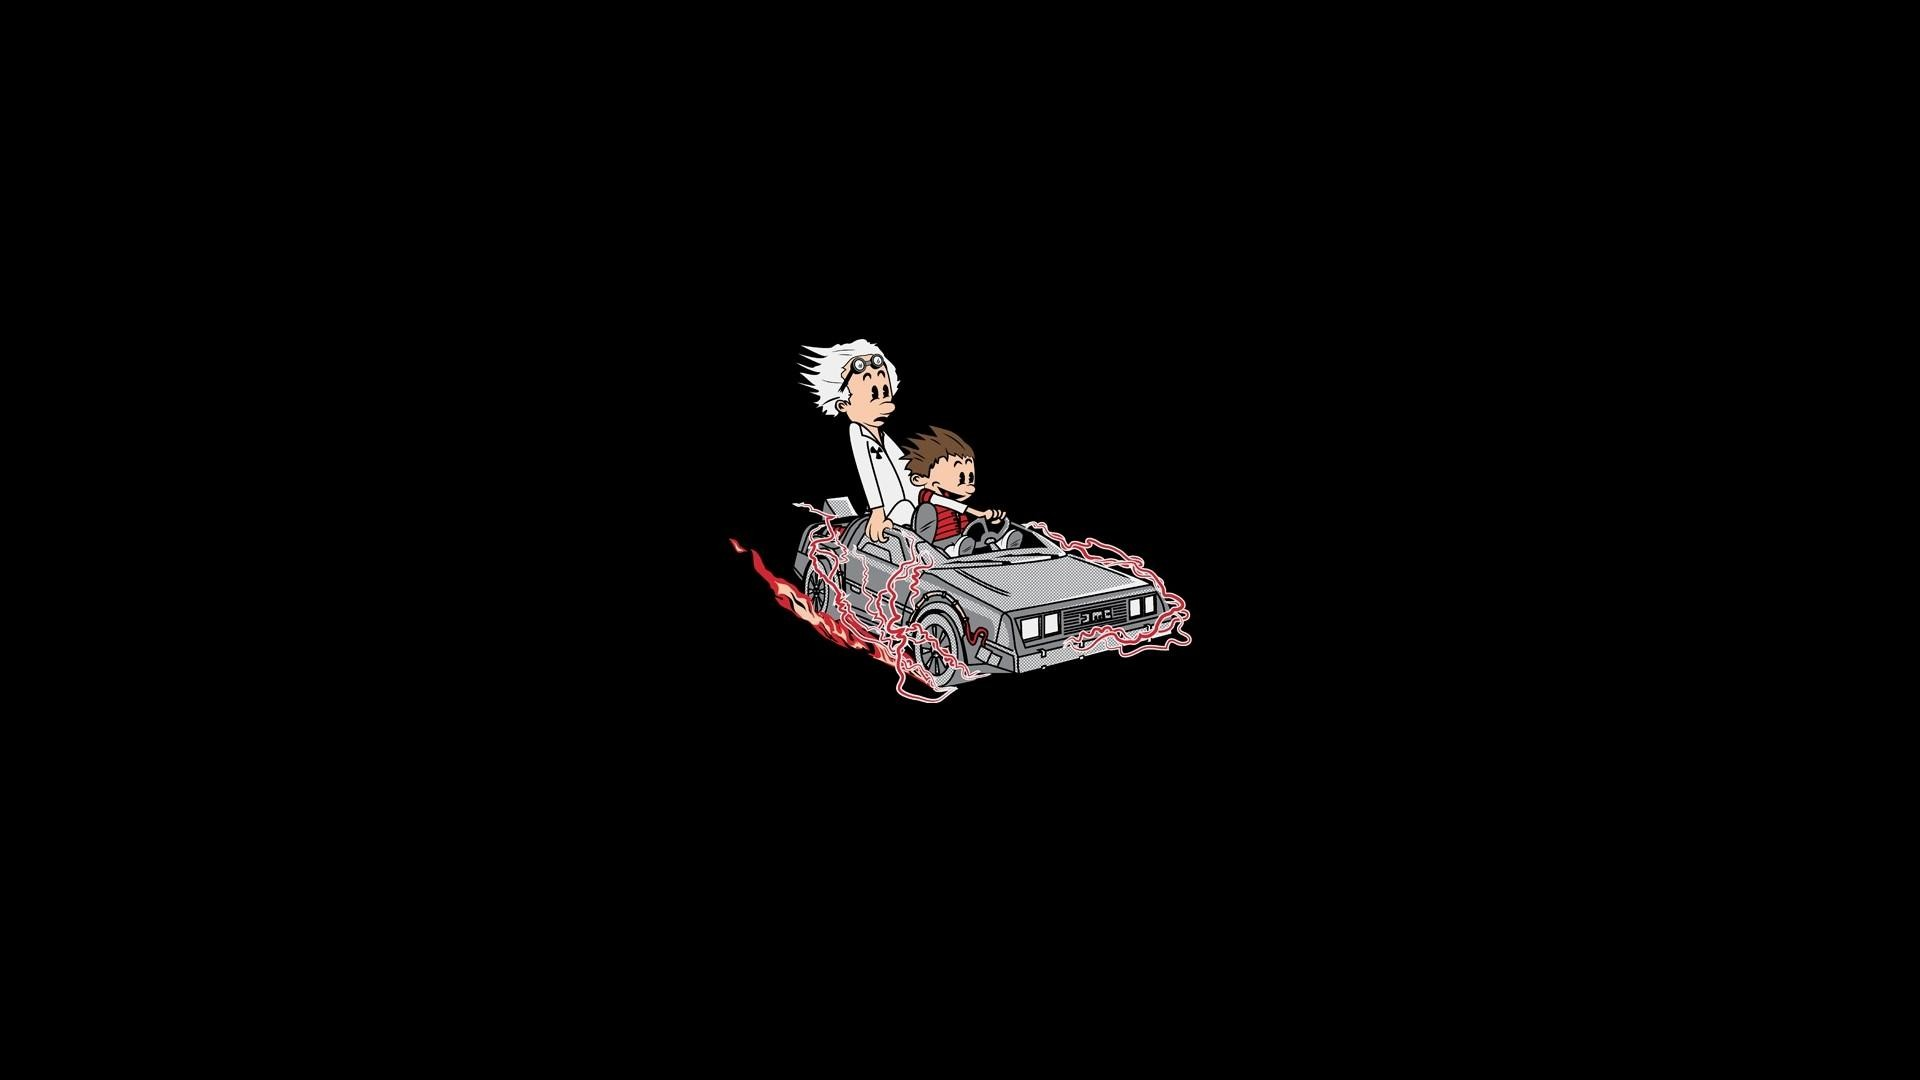 wallpaper.wiki-Photos-Back-To-The-Future-PIC-